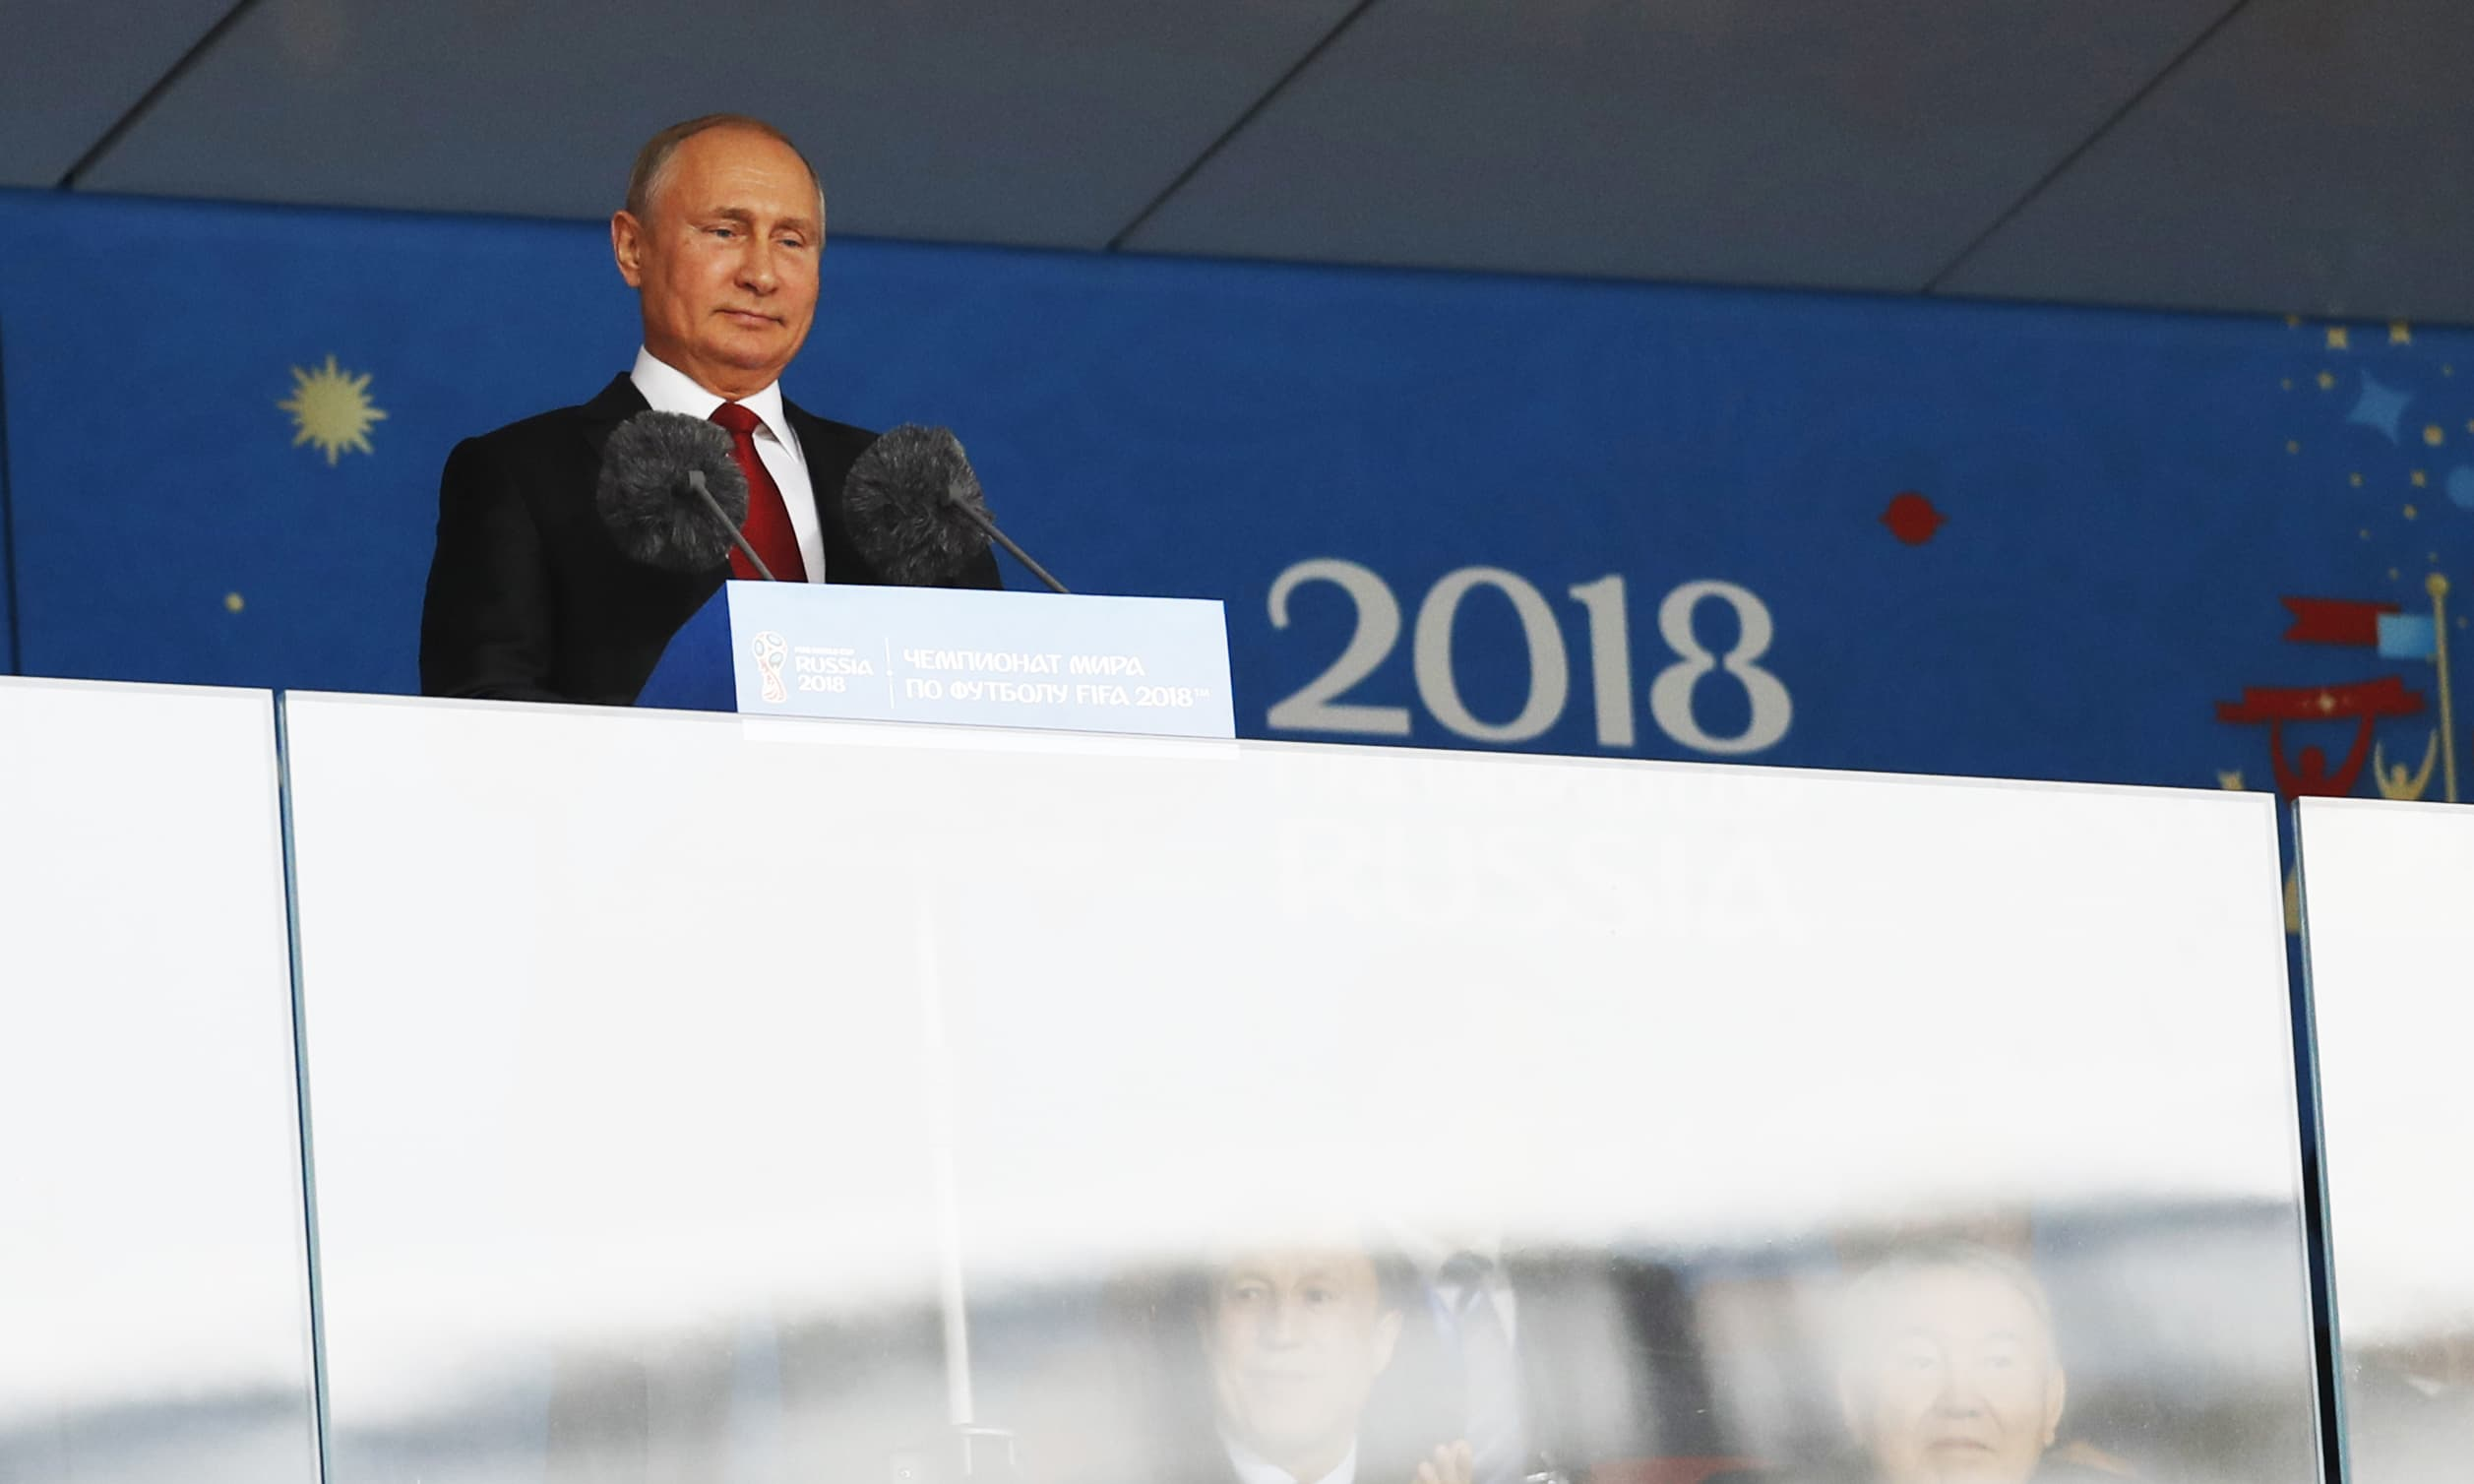 Russian President Vladimir Putin speaks during the Opening Ceremony for the World Cup 2018. — AP